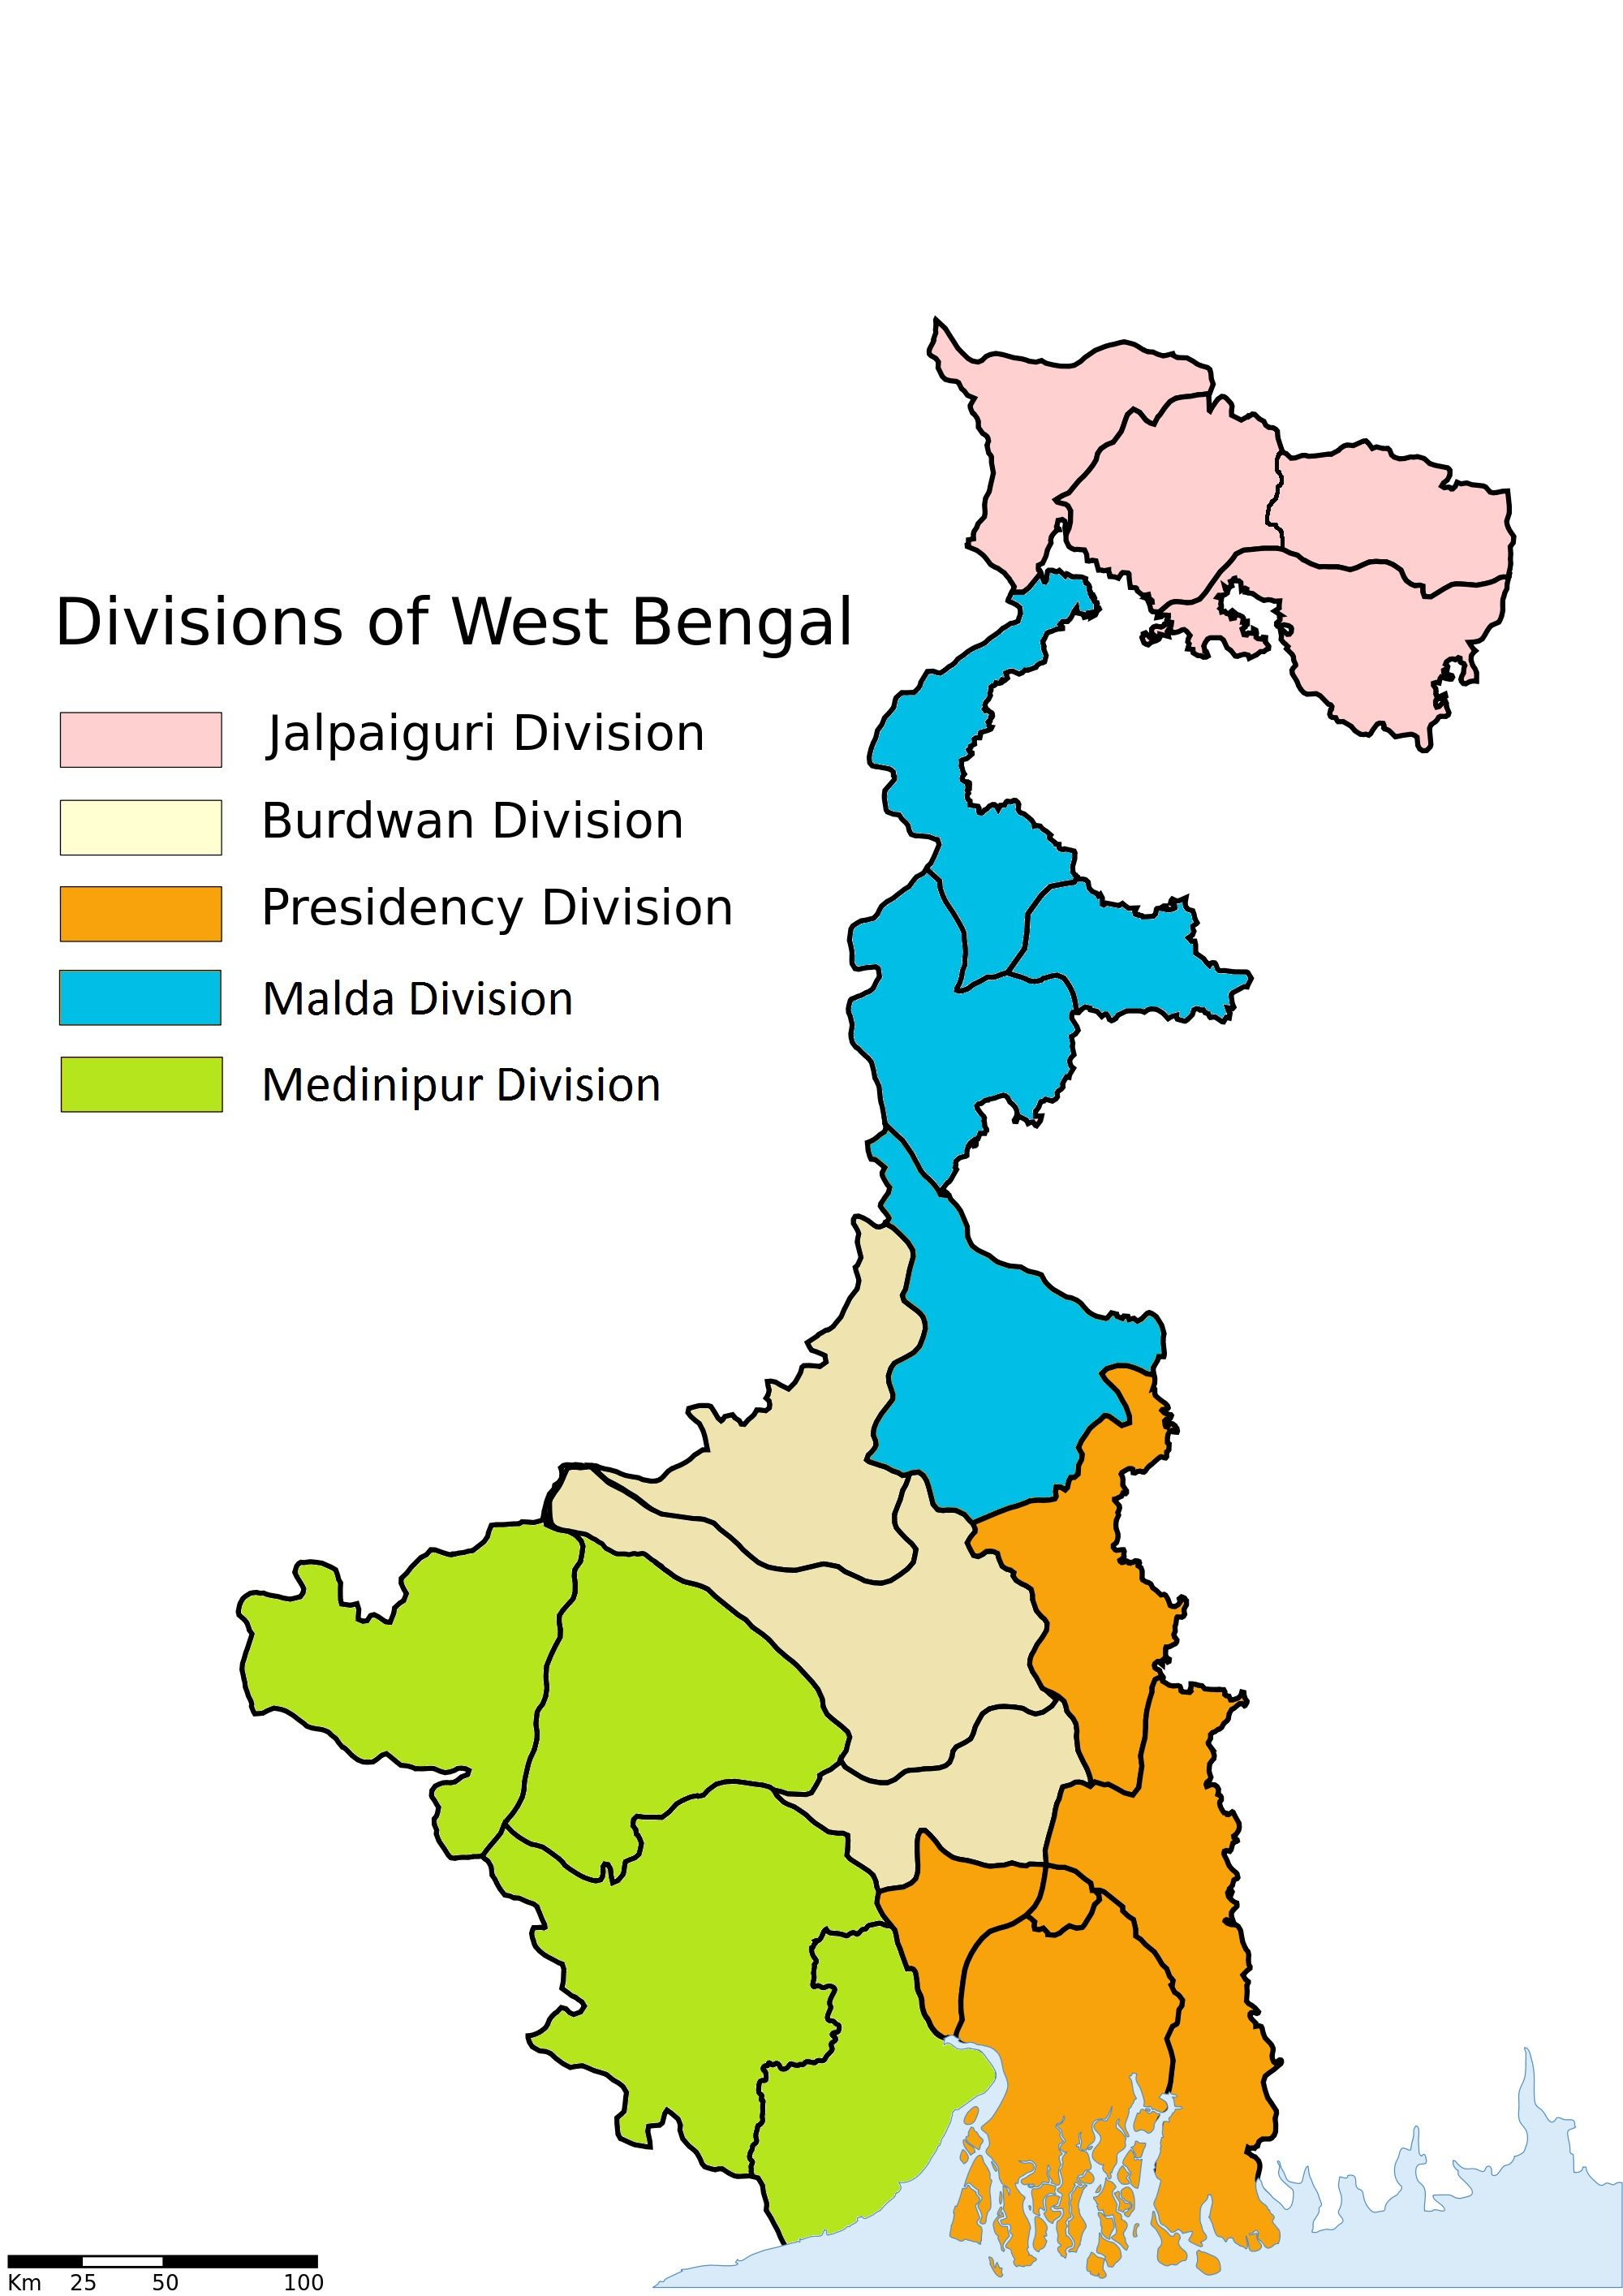 West Bengal Map | Active Recruiting Agencies In India ... on map of united kingdom, map south india, map of united arab emirates, map of iran, map of singapore, map of rajasthan, map of khajuraho, map of mumbai, map of gujarat, map of pakistan, map of burma, map of goa, map of bihar, map of kerala, map of kolkata, map of assam, world map india, map of delhi, map of yemen, map of varanasi,